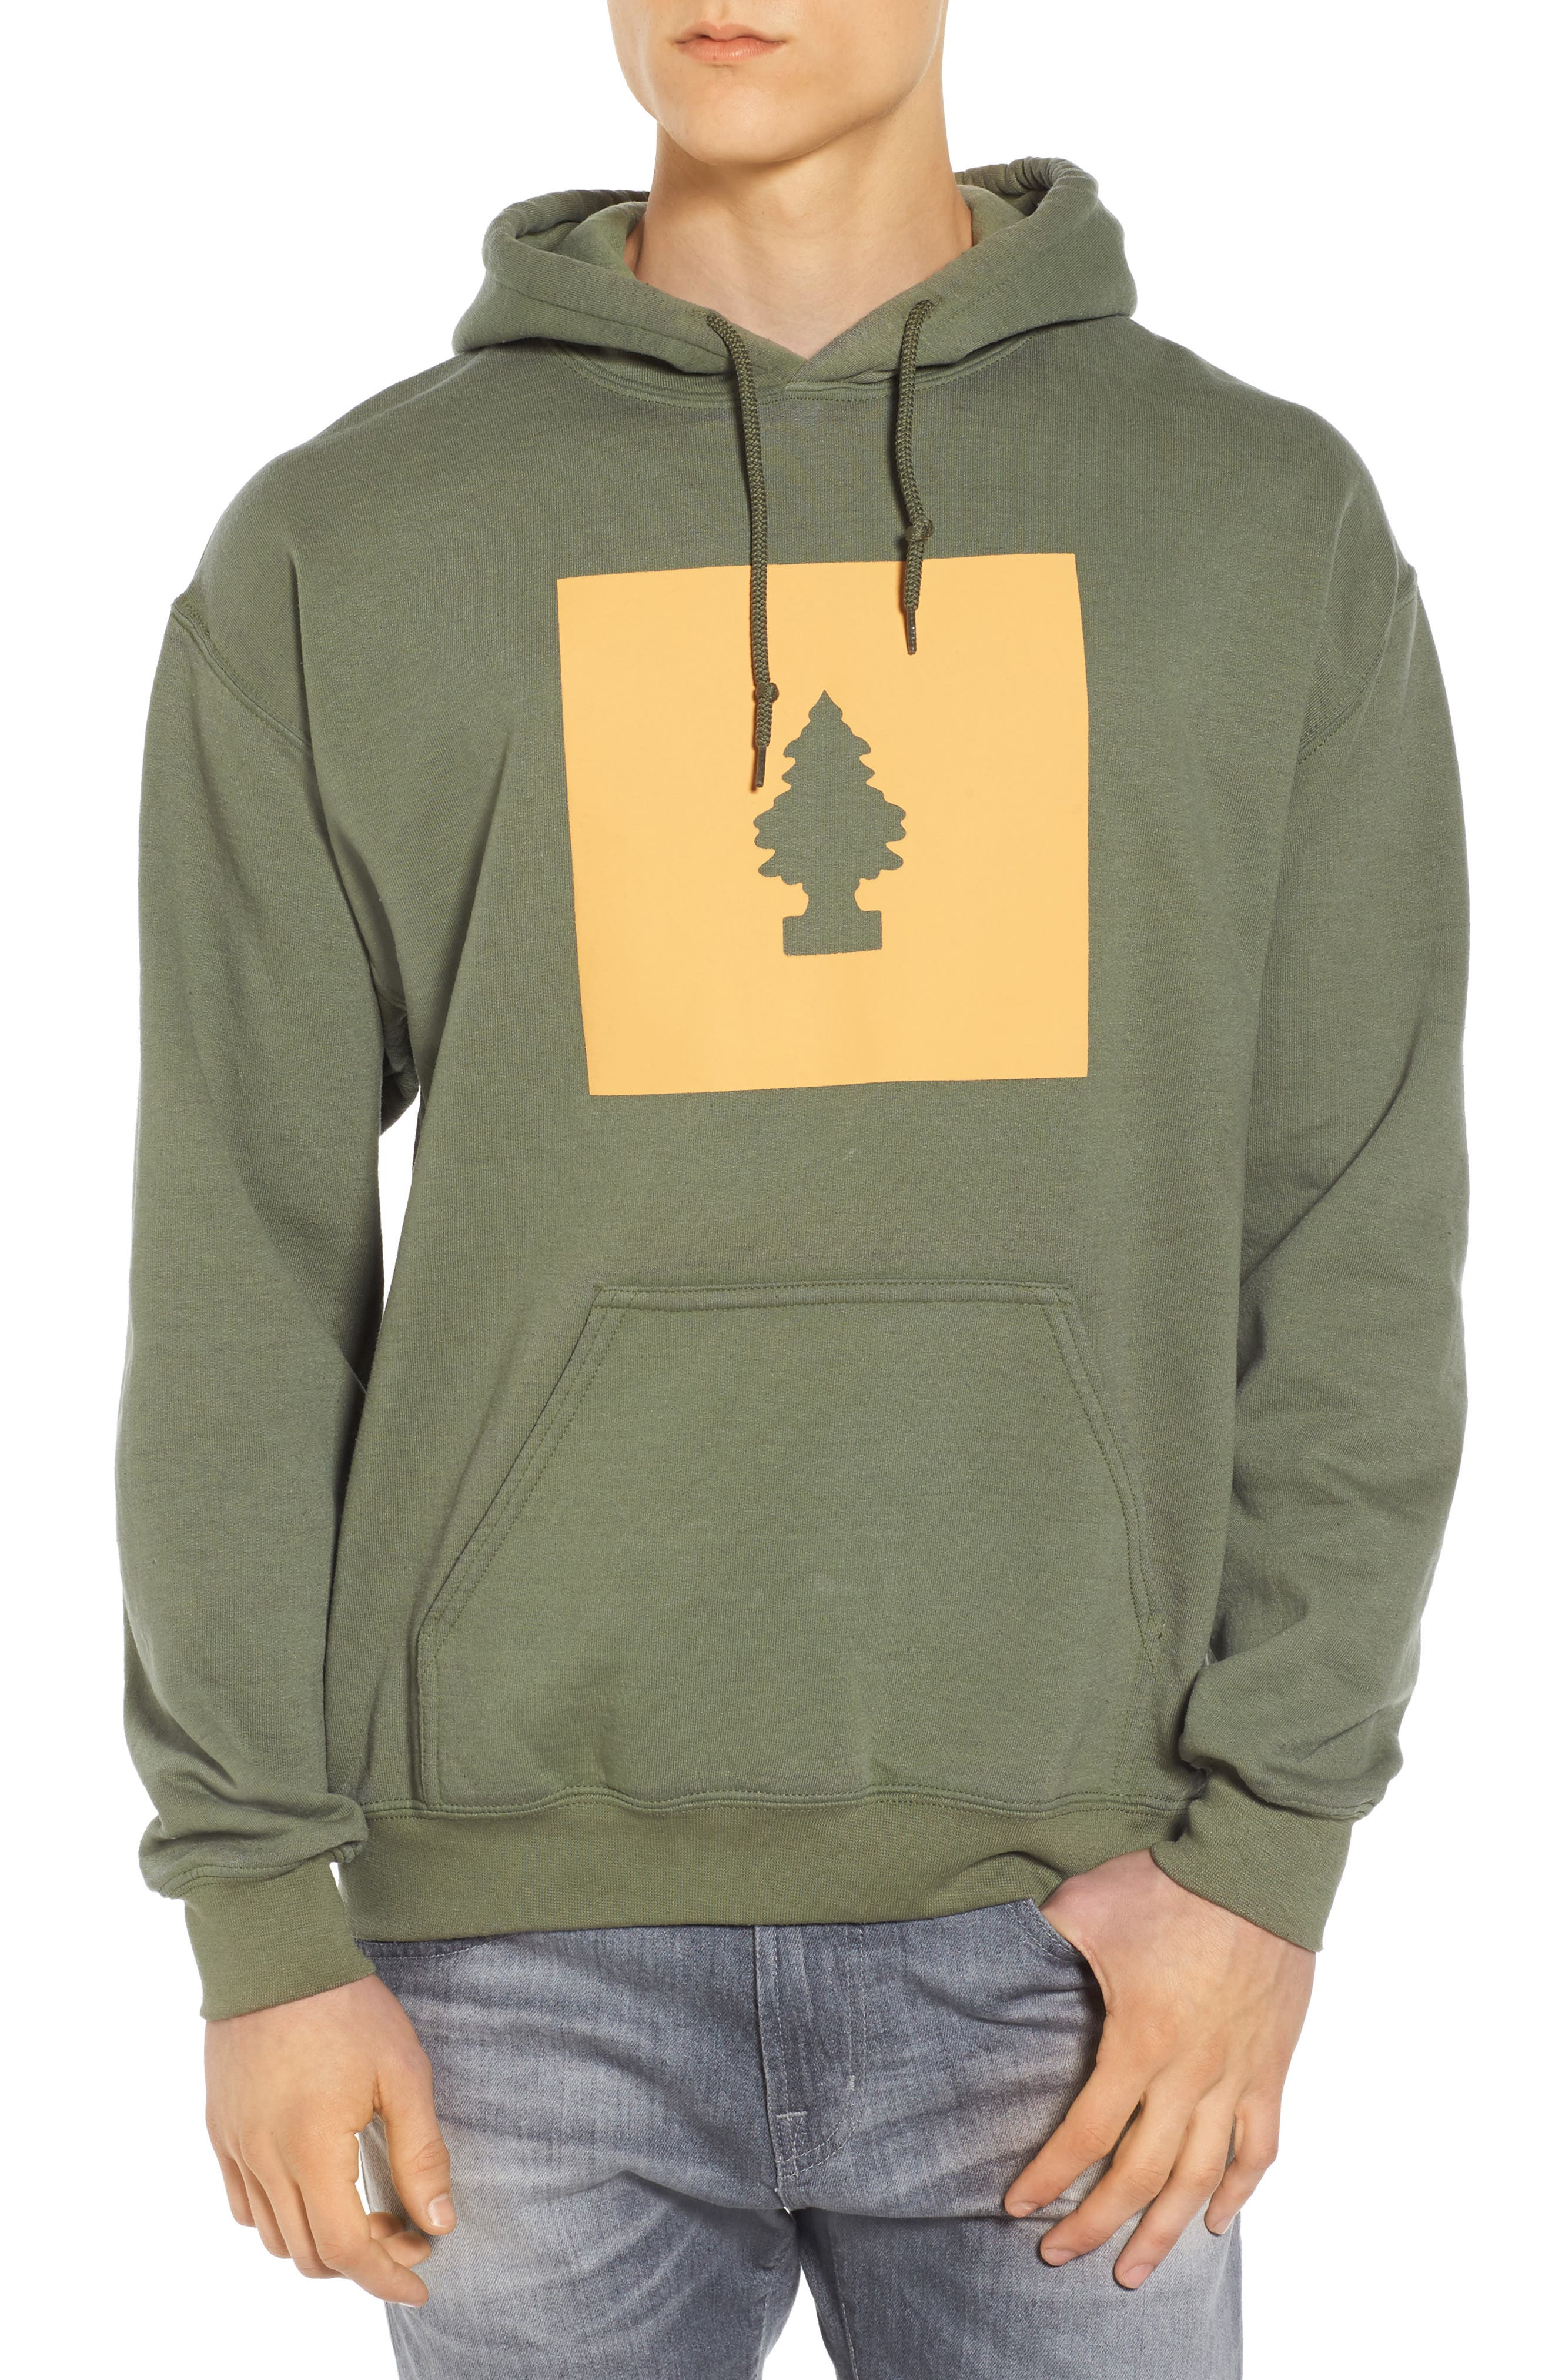 Happy Little Tree Hoodie,                             Main thumbnail 1, color,                             300